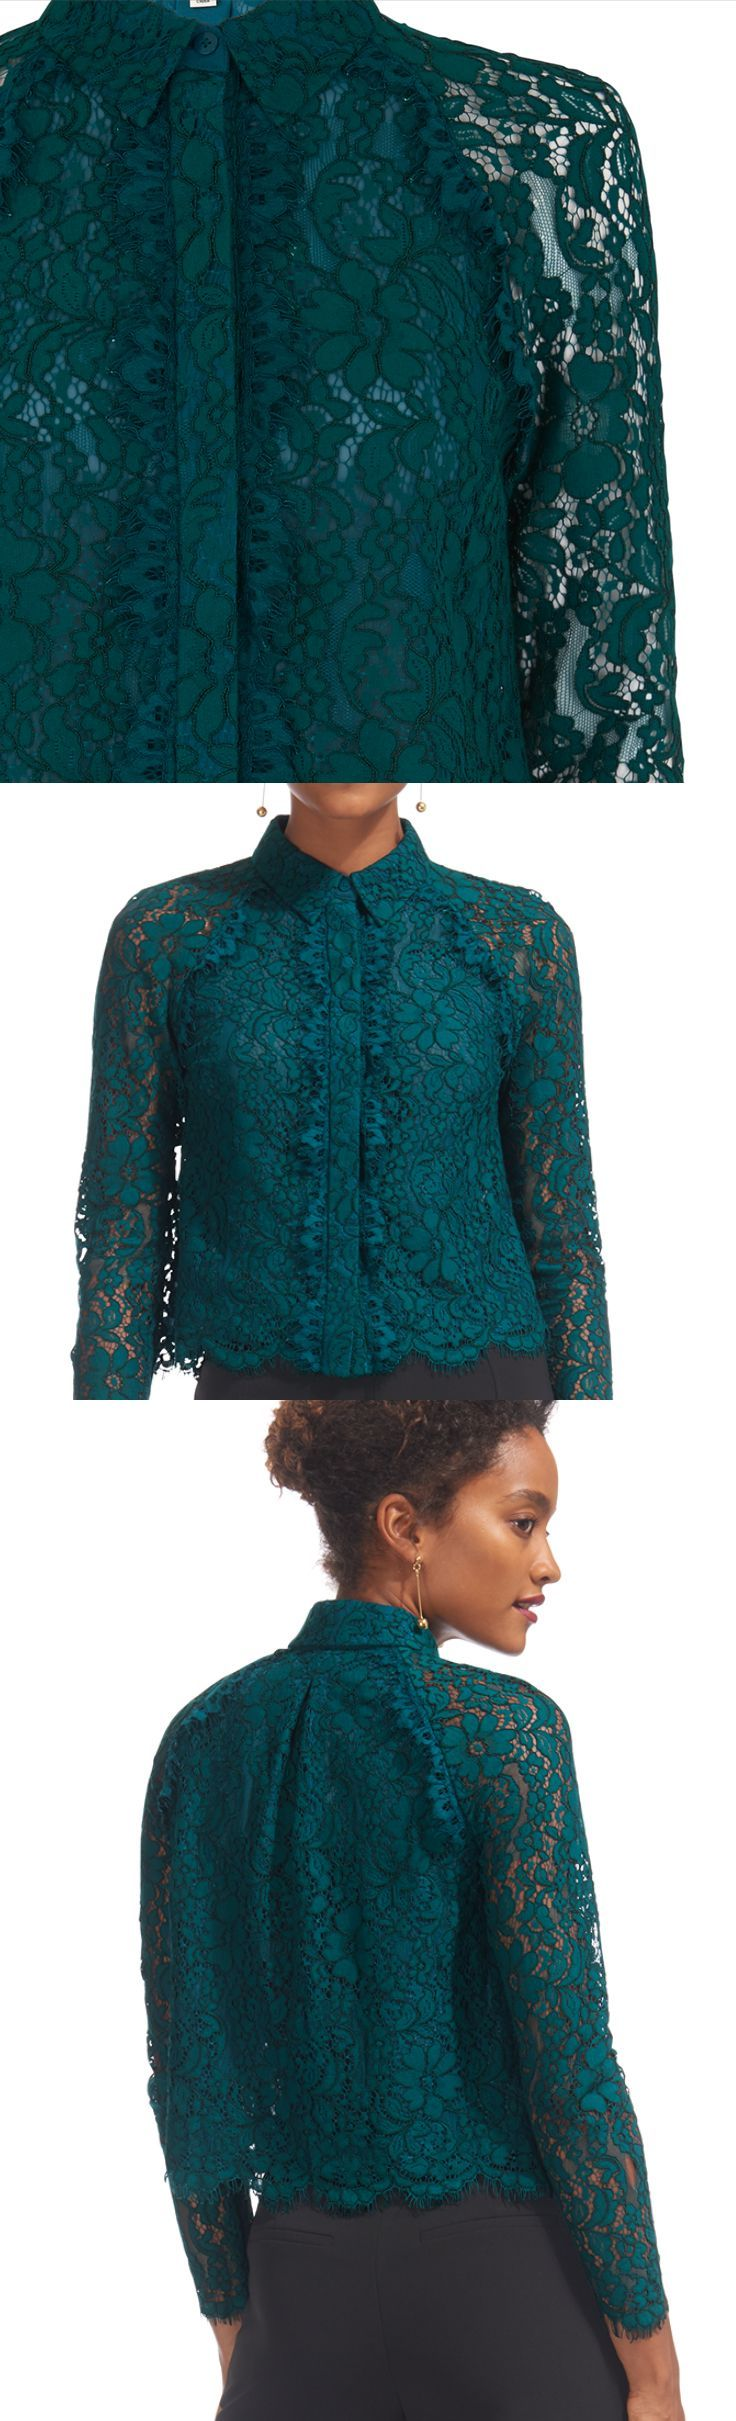 Whistles online store - Suzie Lace Shirt in deep teal. Great for friends winter weddings, race day fashion, worn with a tailored trouser on midi skirt and boots. Or a long line skirt and faux fur stole for a more vintage feel. Great winter colour for lot's of skins. Winter Fashion inspiration. outfit ideas. Wear this Teal Green with Purple - Brilliant Combo for a Christmas Wedding. #fashion #fashionista #affiliatelink #winter #winterfashion #wedding #weddingguest